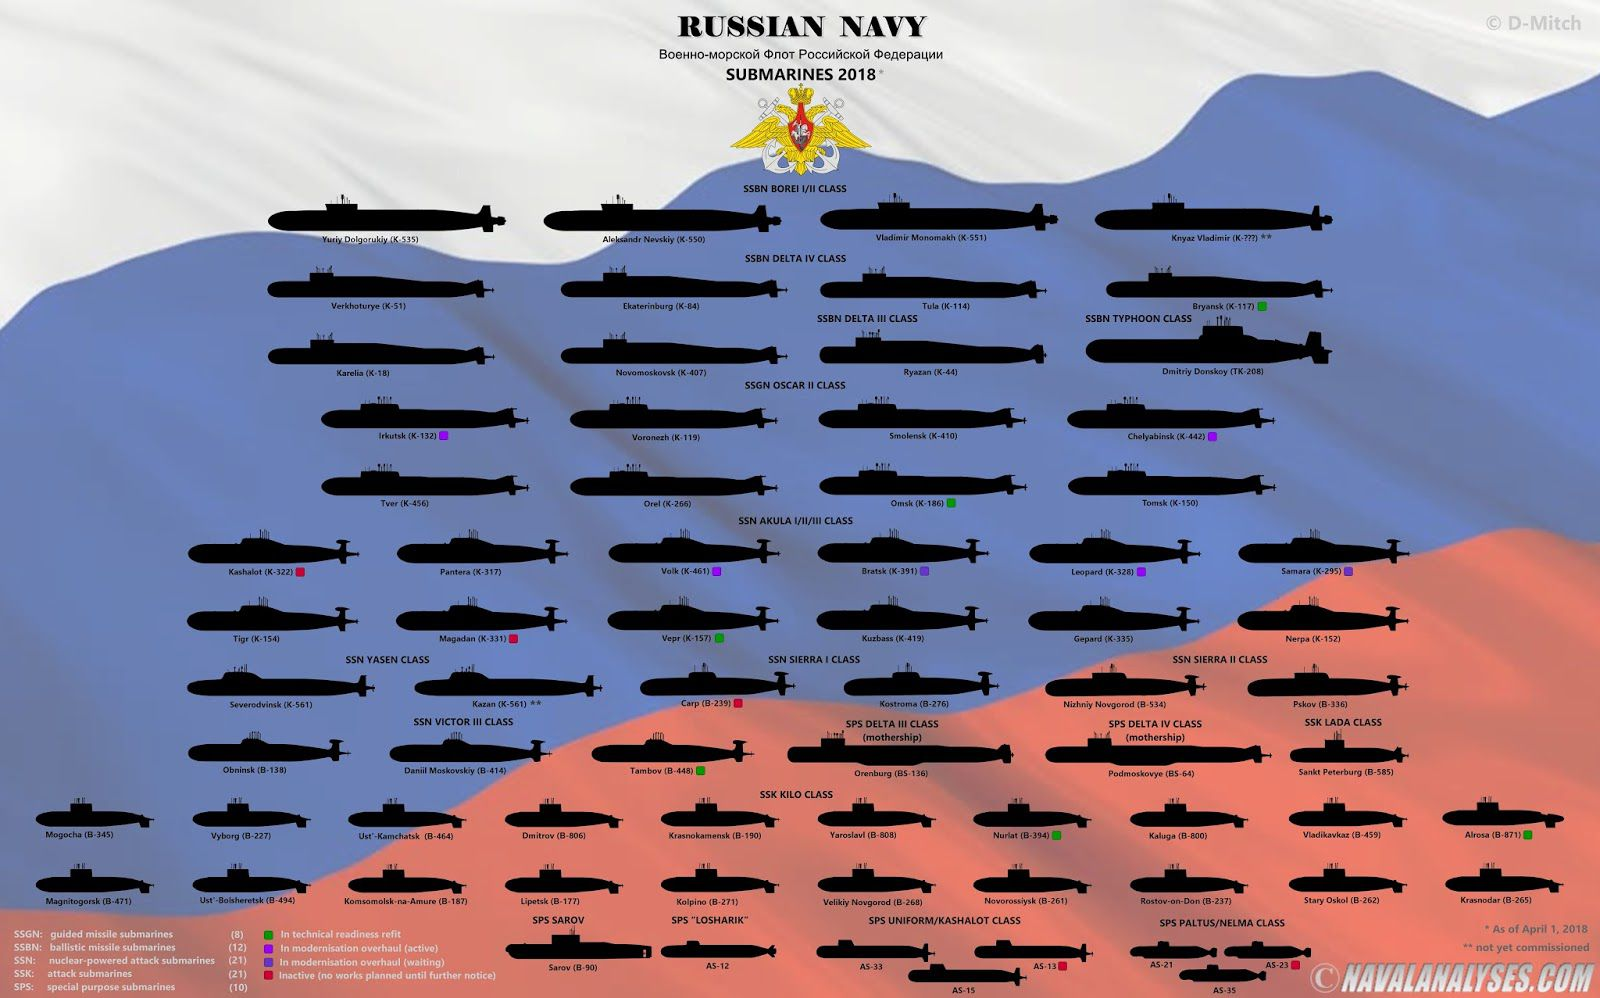 russian-navy-subs-2018-1524159225.jpg